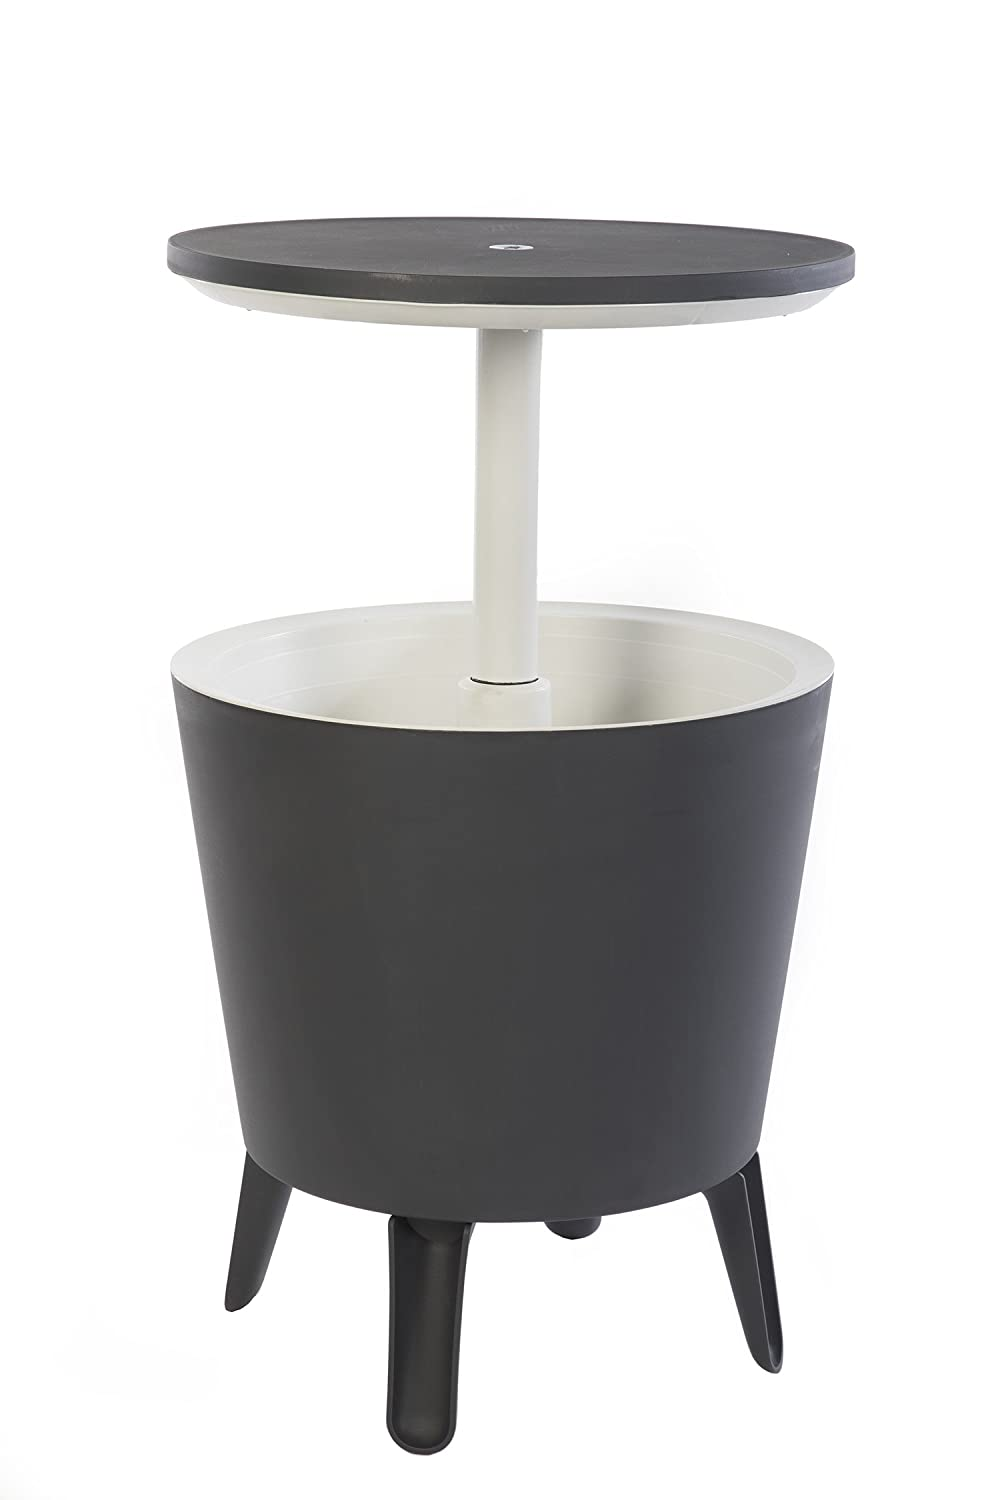 7.5-Gal Cool Bar Cooler Table